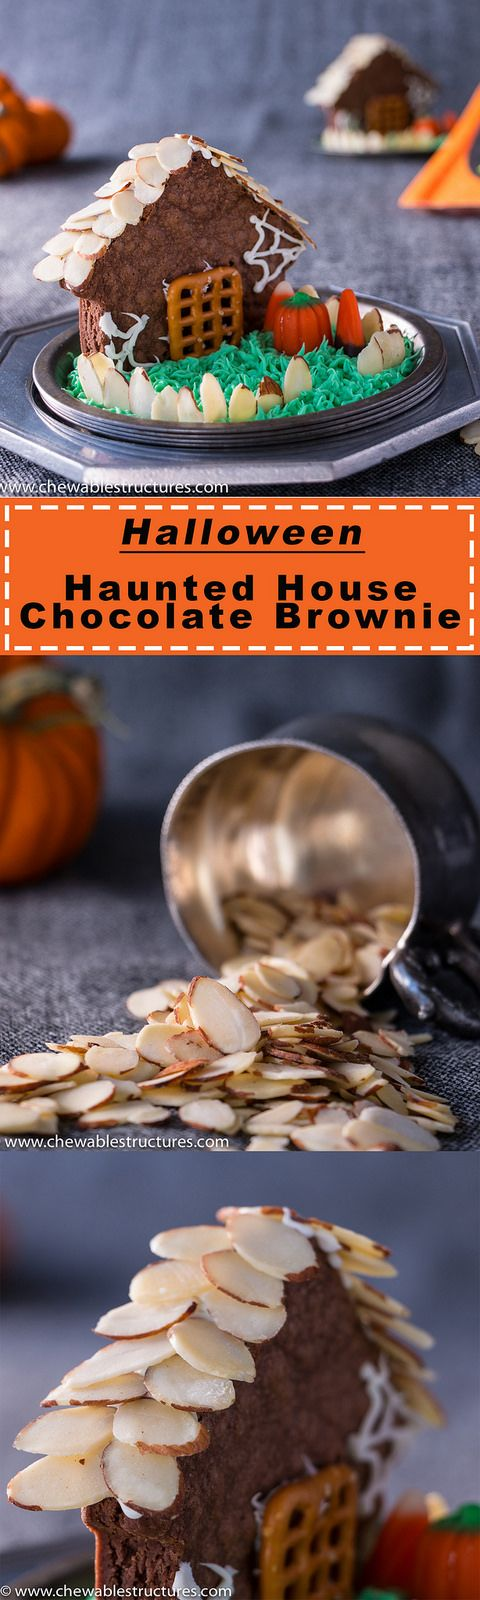 This Halloween Haunted House Chocolate Brownie With Shaved Almonds Will Scare Your Friends - Chewable Structures: Happy Halloween! It's time to scare your loved ones with sweet treats, like this haunted house made of chocolate brownies, California almonds, frosting, and let's not forget– candy corn. This fun and easy dessert recipe only takes a few minutes and will scare your friends with sweetness.